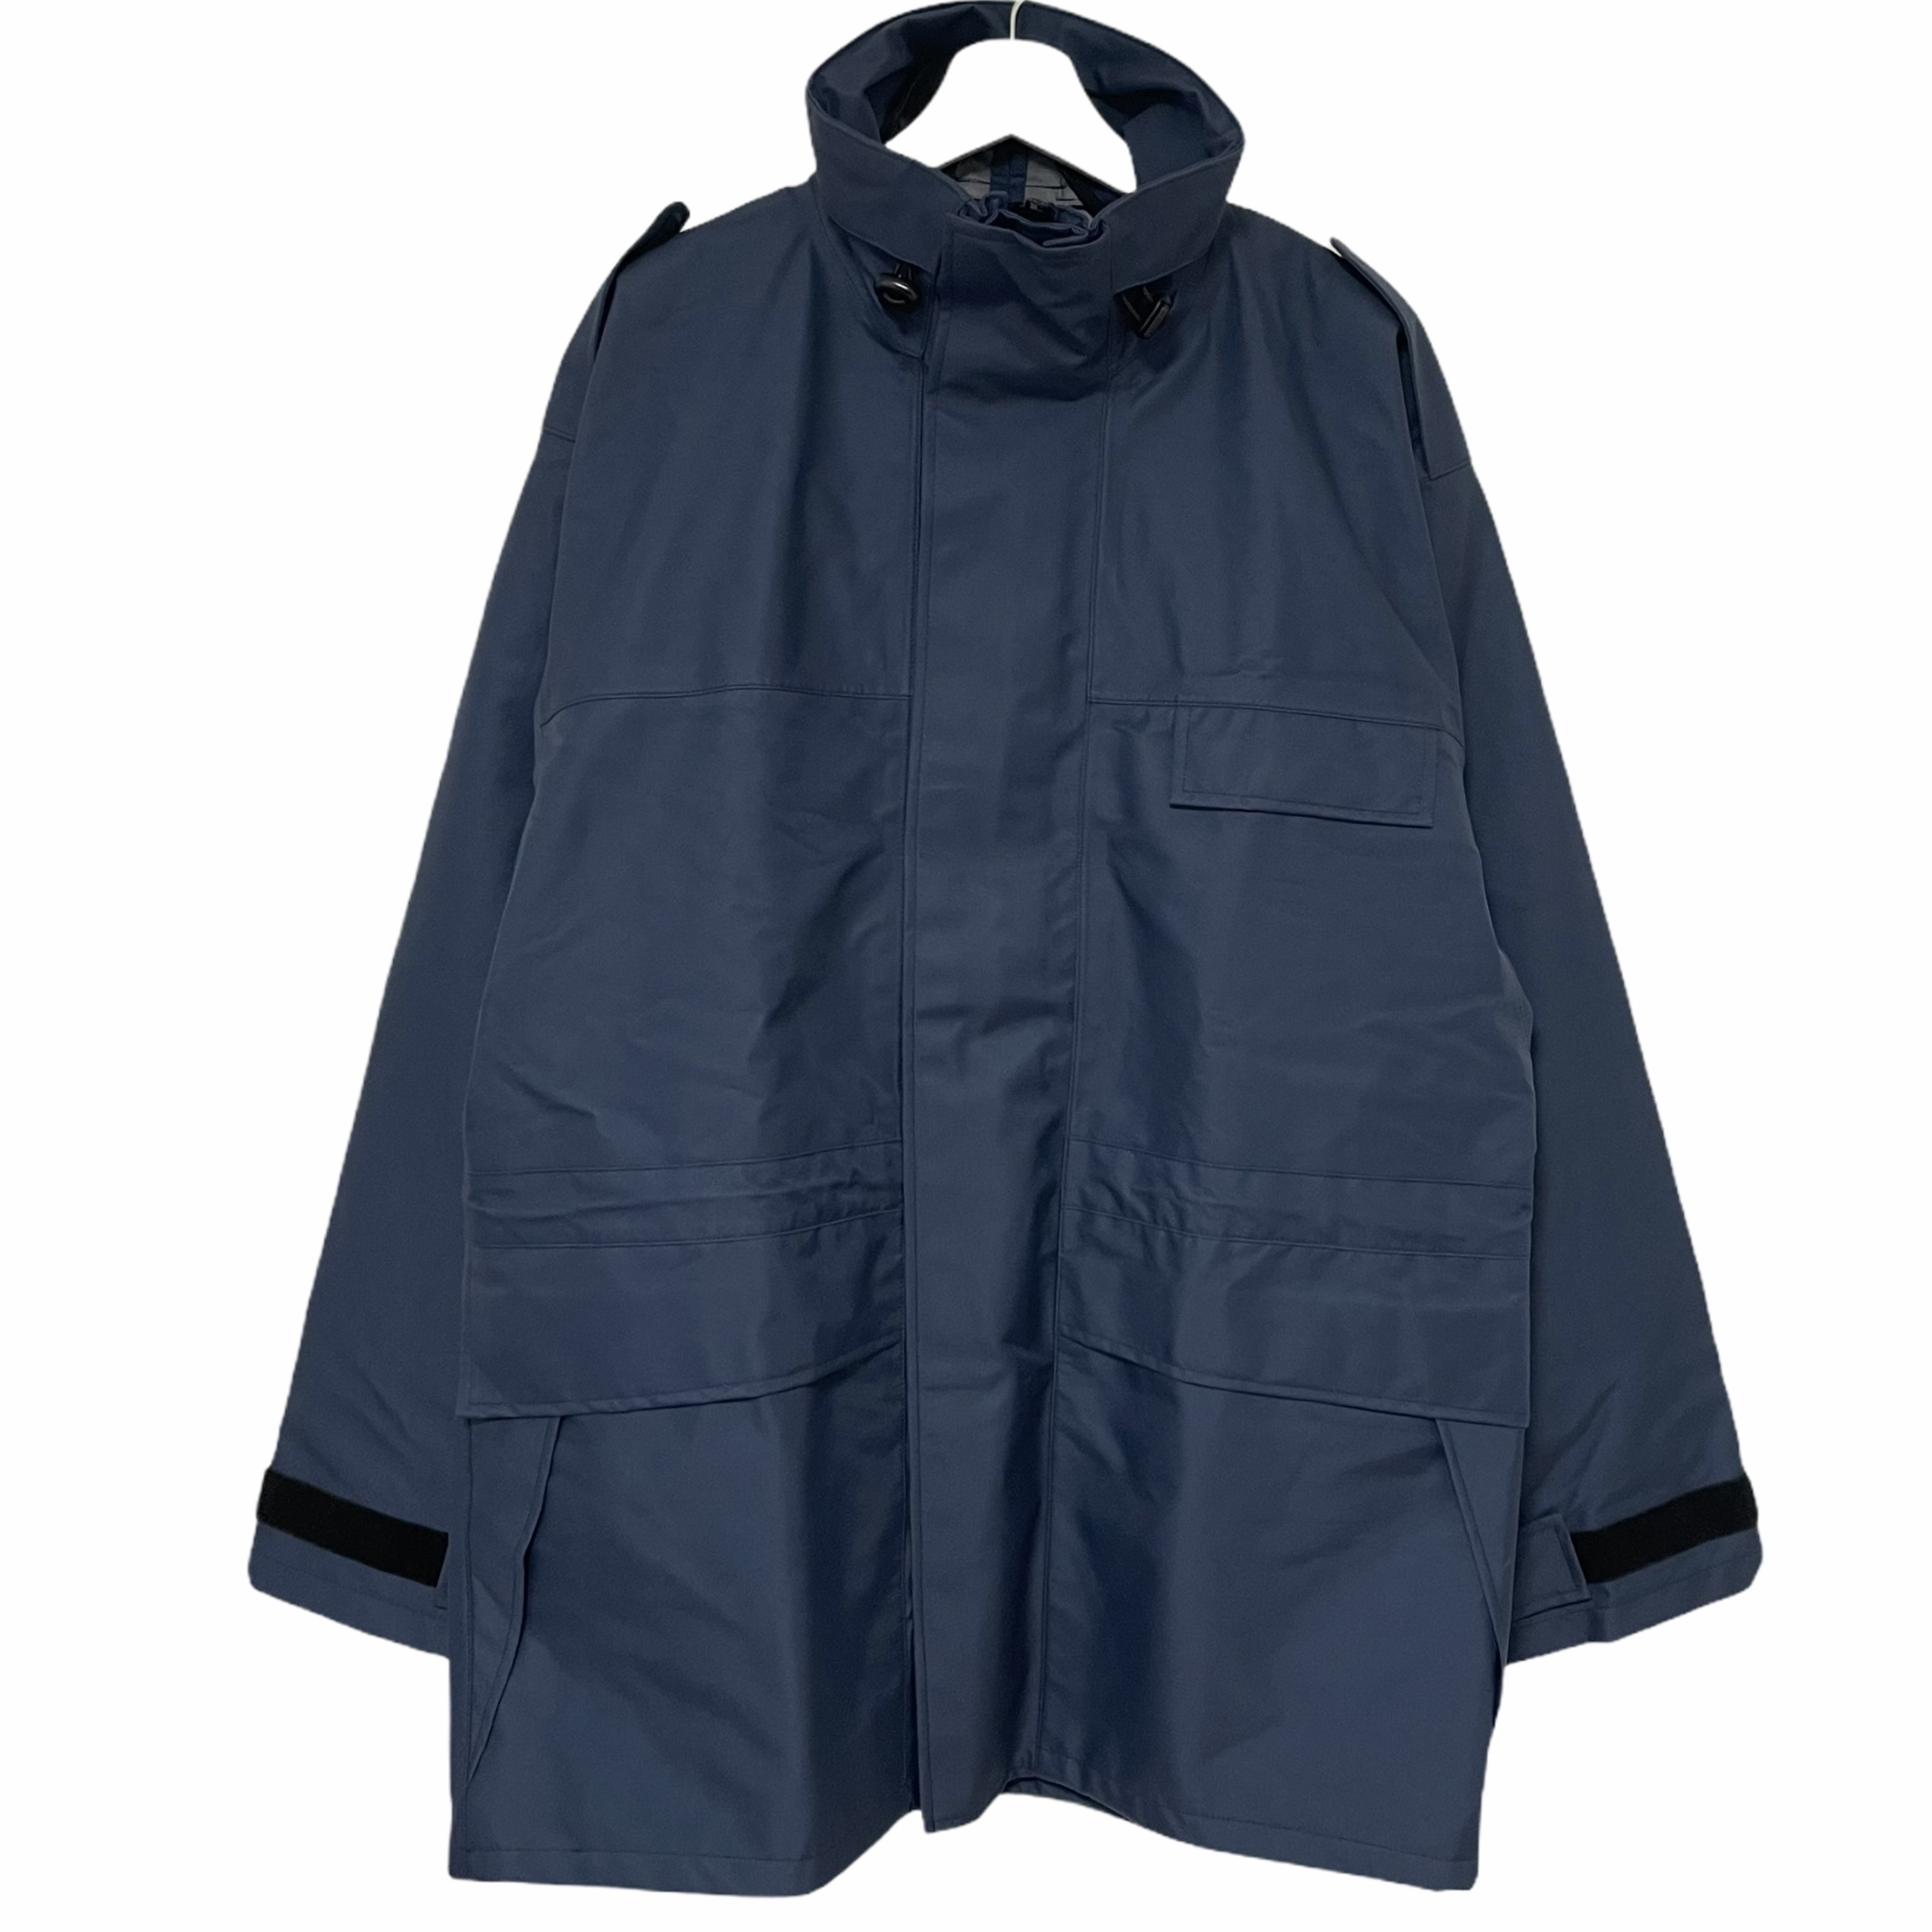 2 Dead Stock 90's-00's ROYAL AIR FORCE JACKET WET WEATHER 【180/100 】